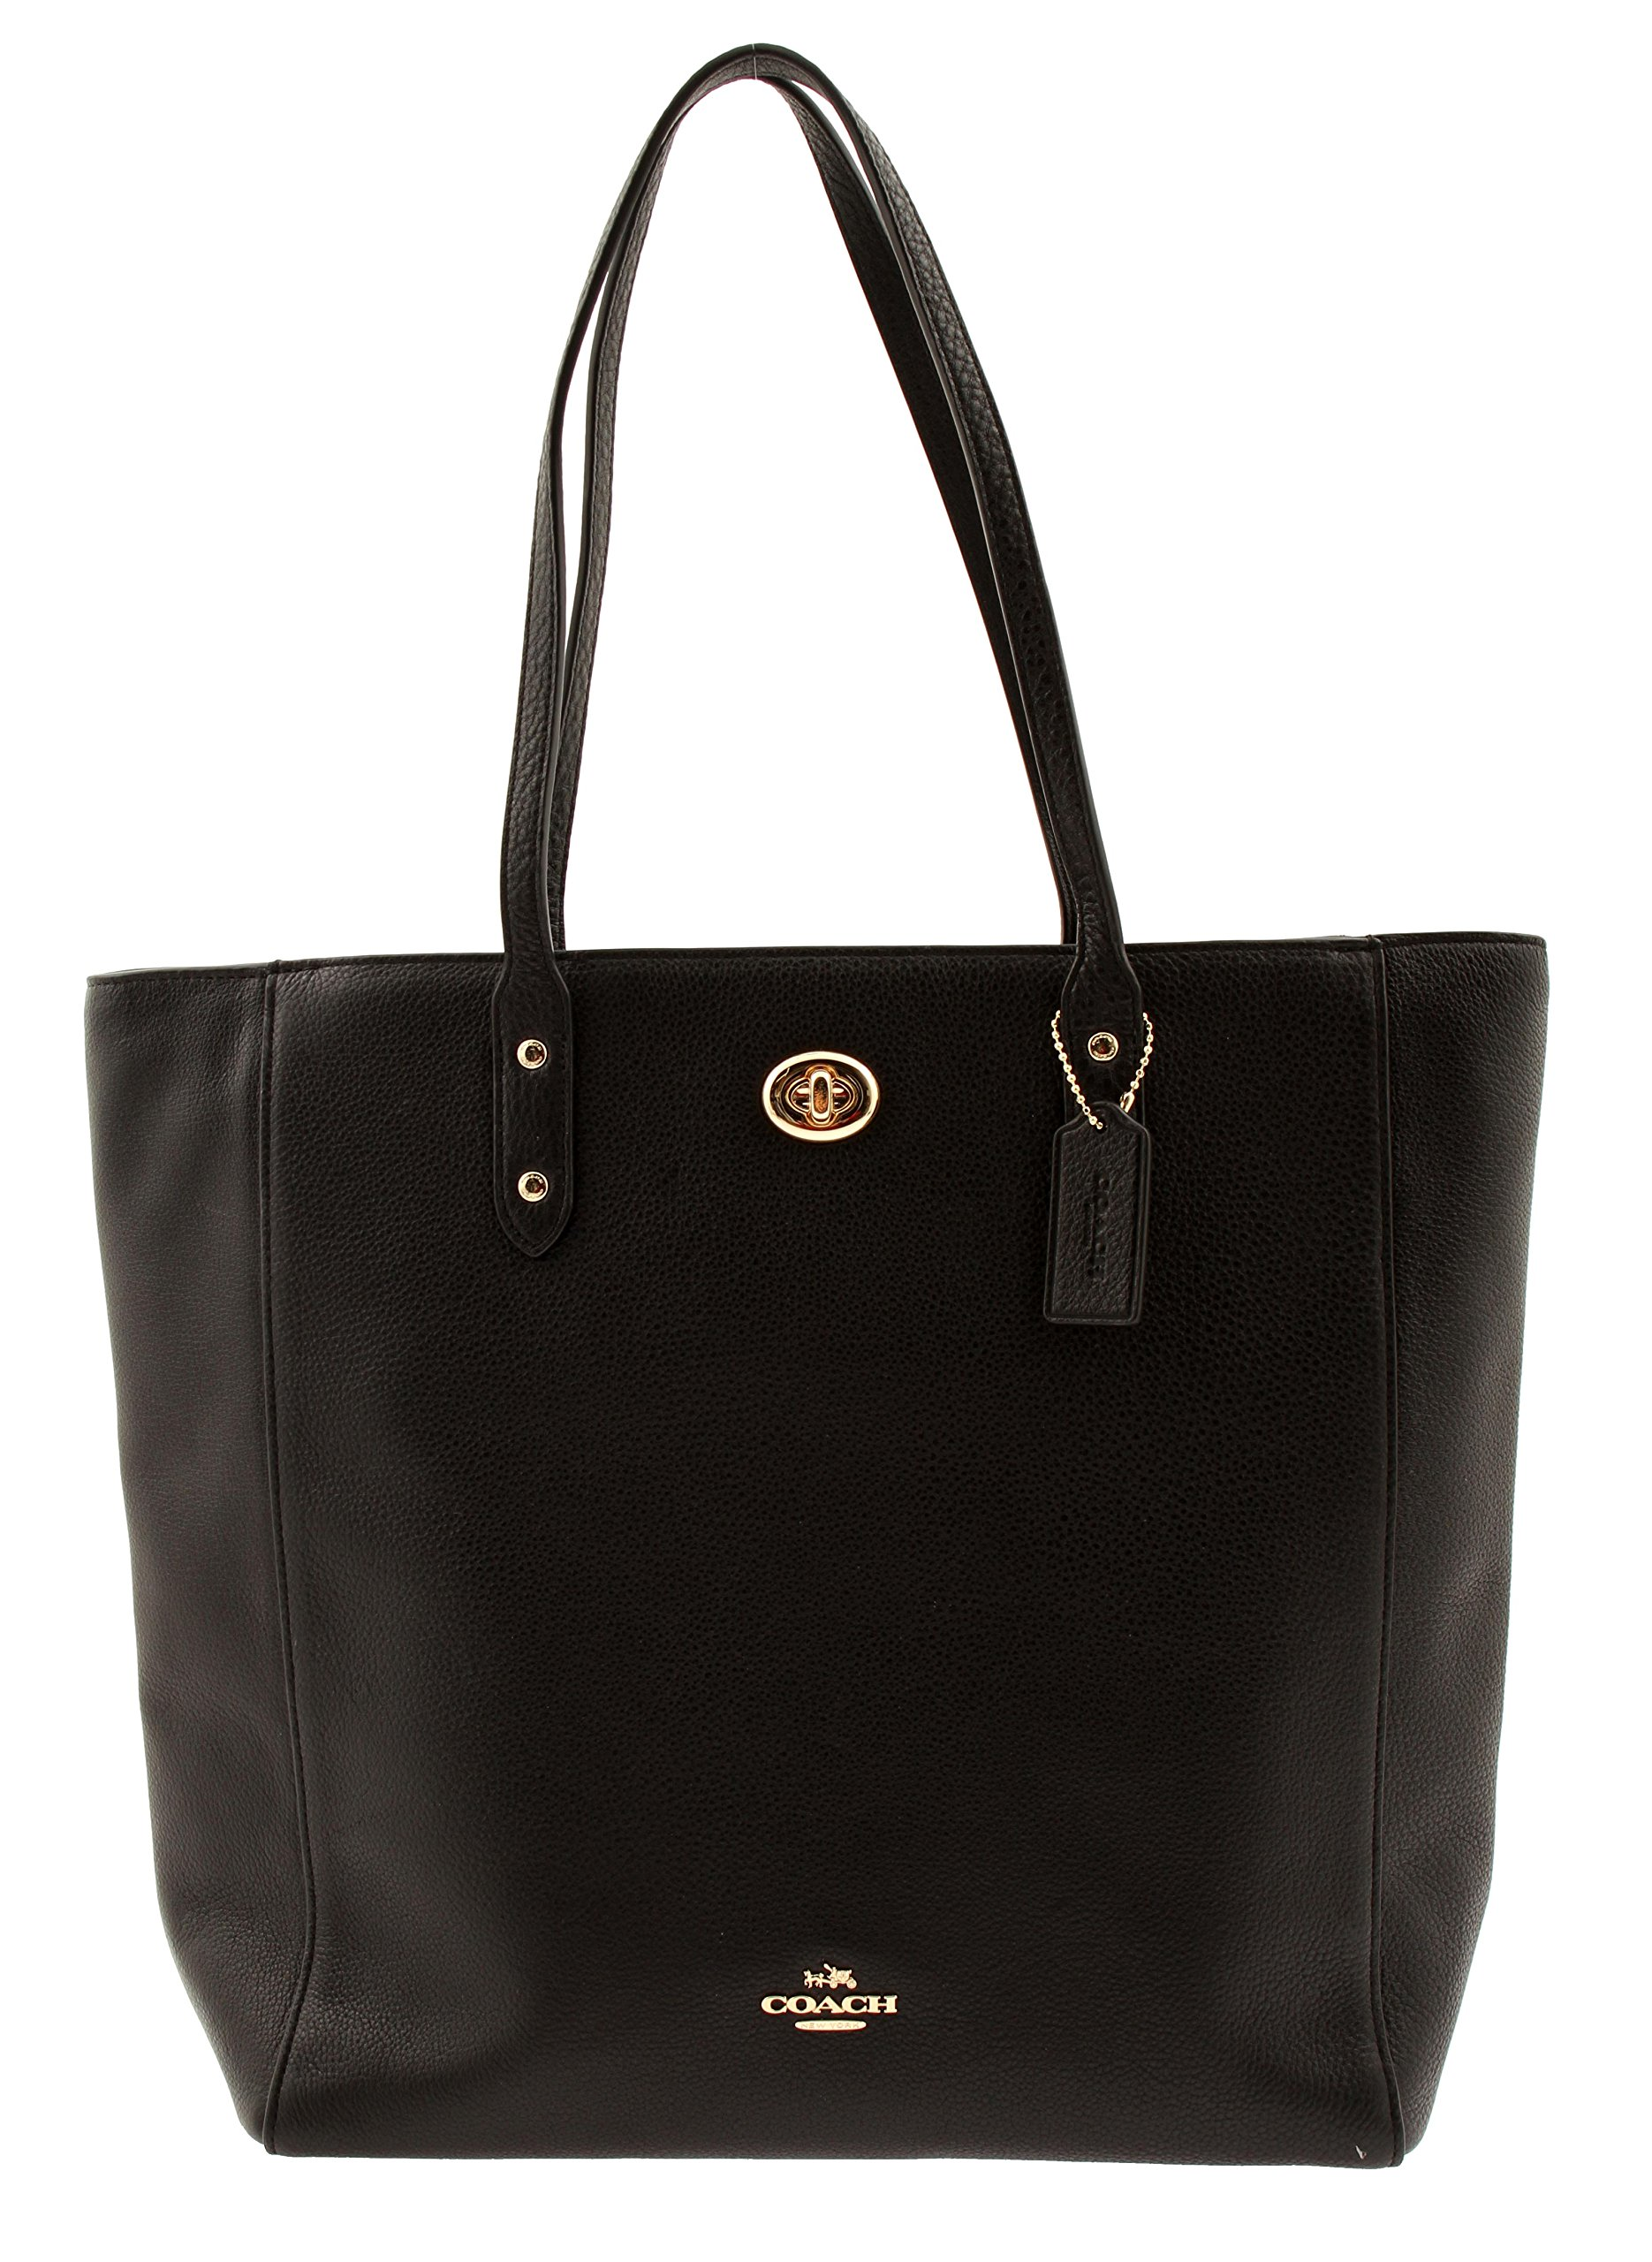 COACH Town Tote in Pebble Leather,  Black